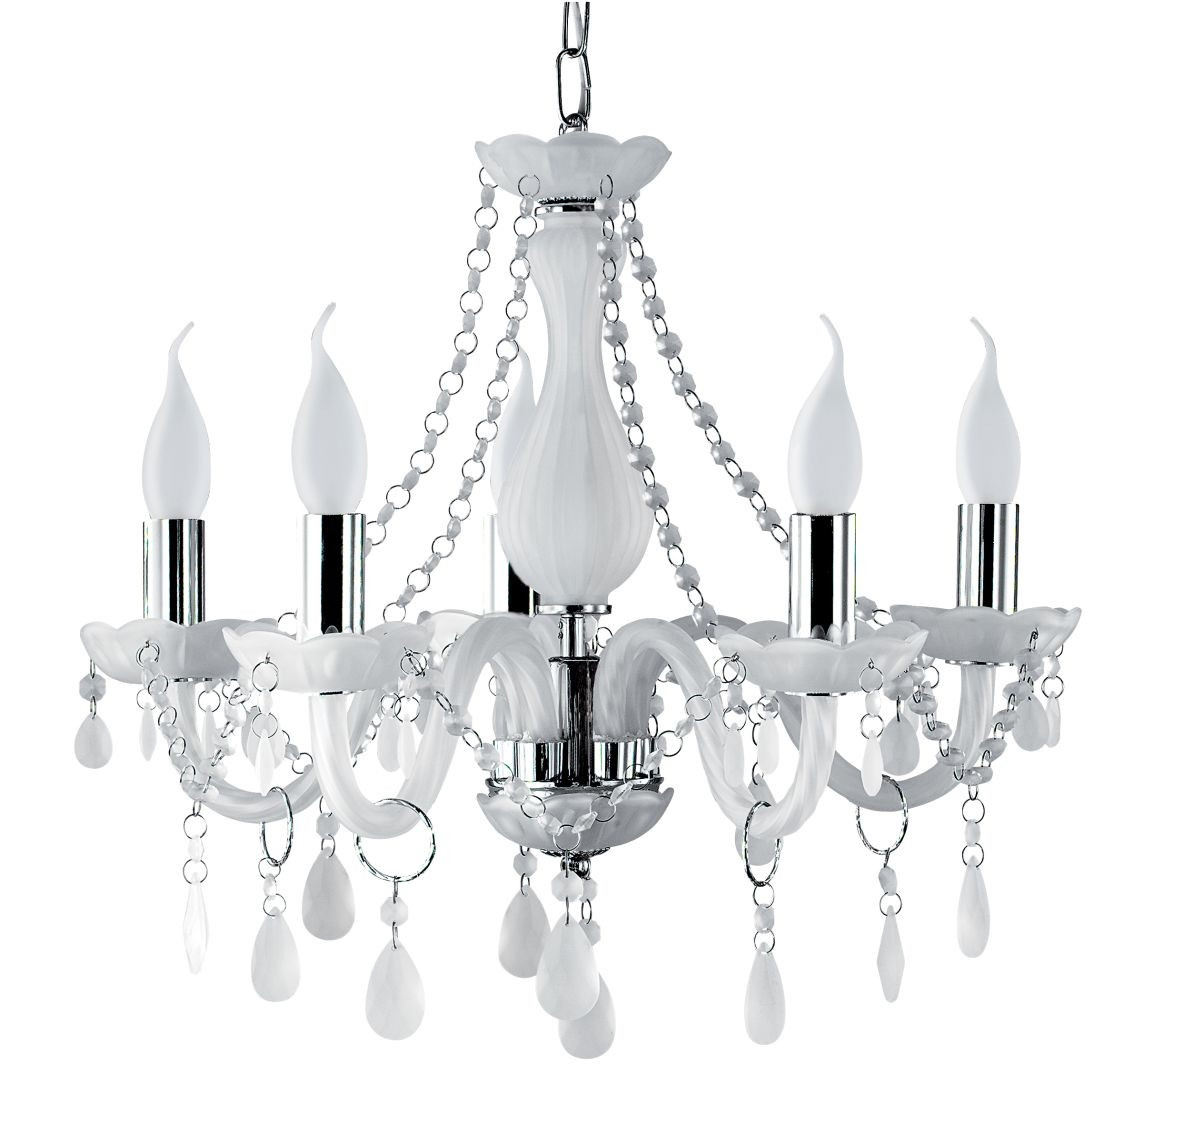 Decorative Chandeliers For Bedroom With White And Crystal For White Chandeliers (View 7 of 15)